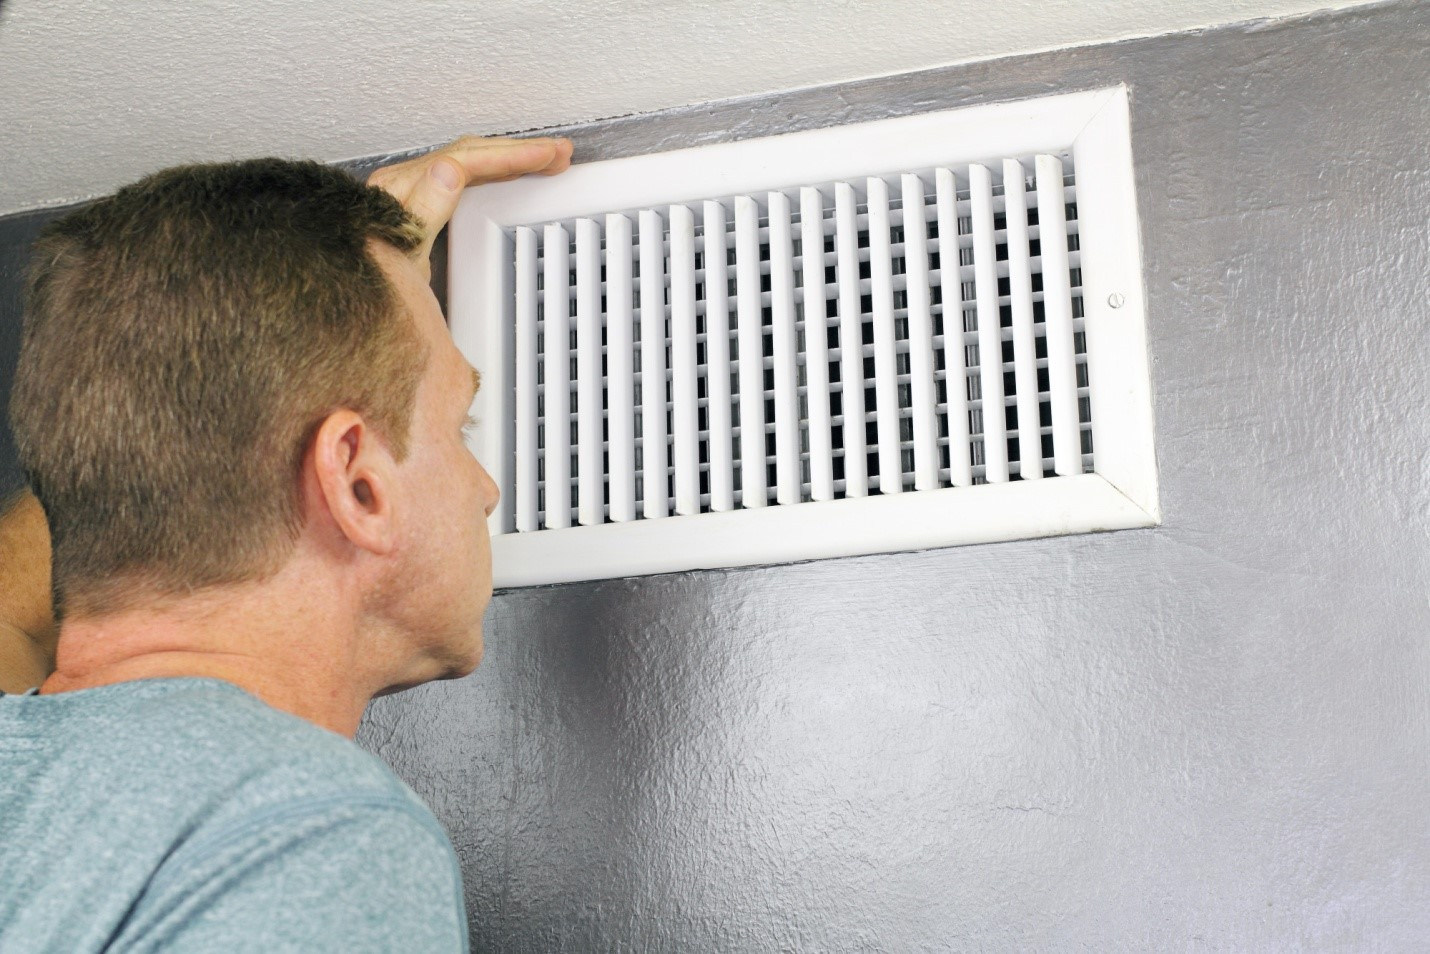 11 Furnace Problems That Require Professional Help